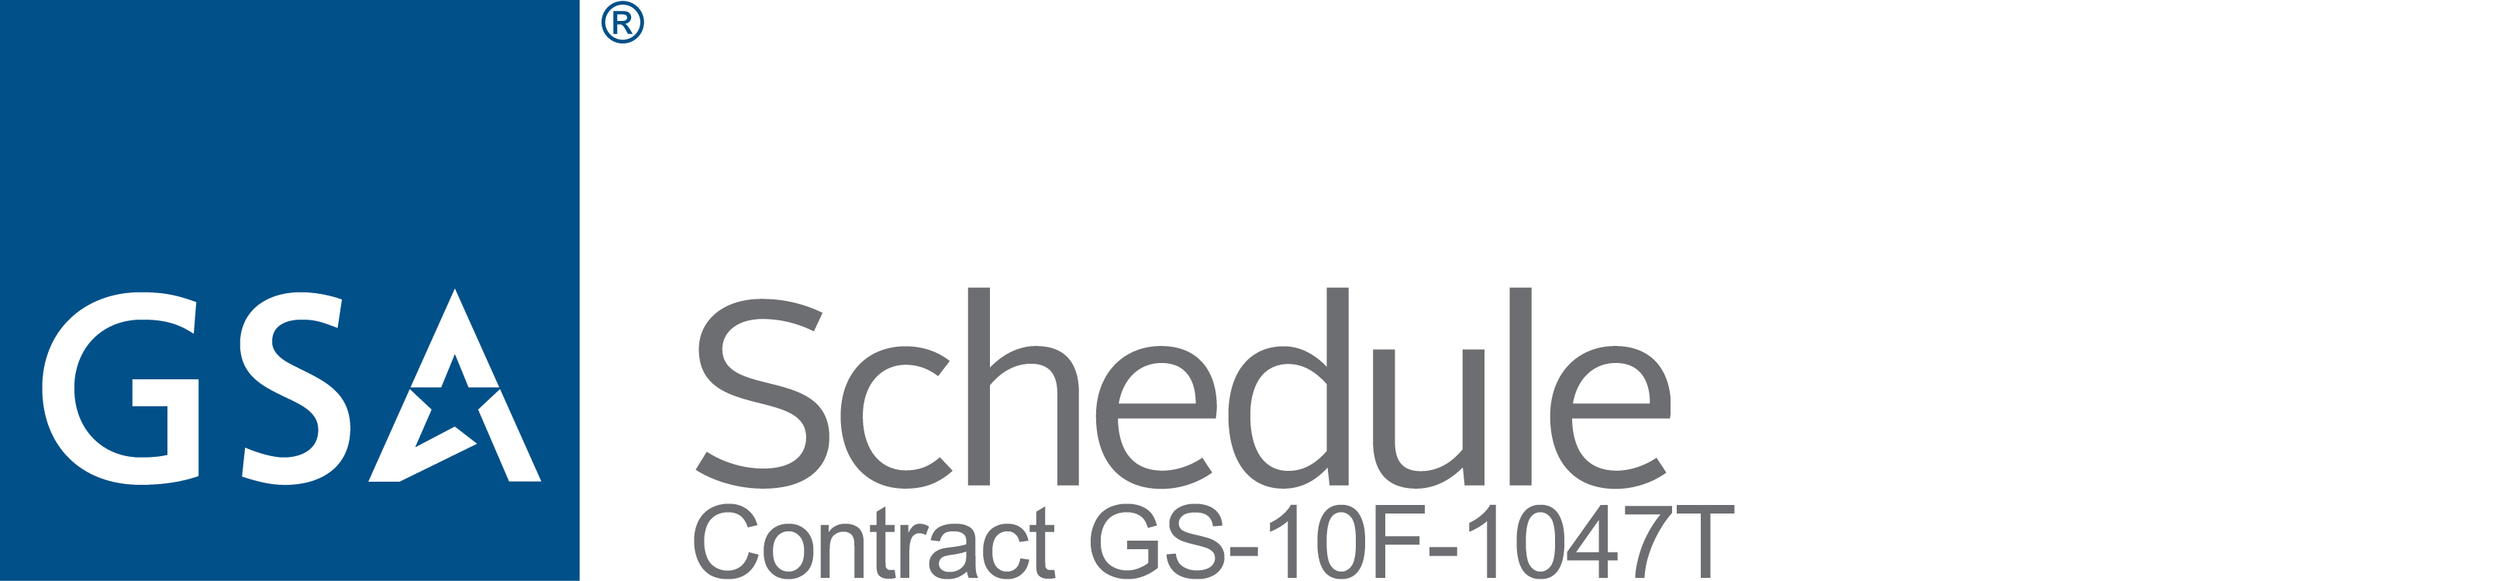 GSA logo with EcoPlan contract number.png